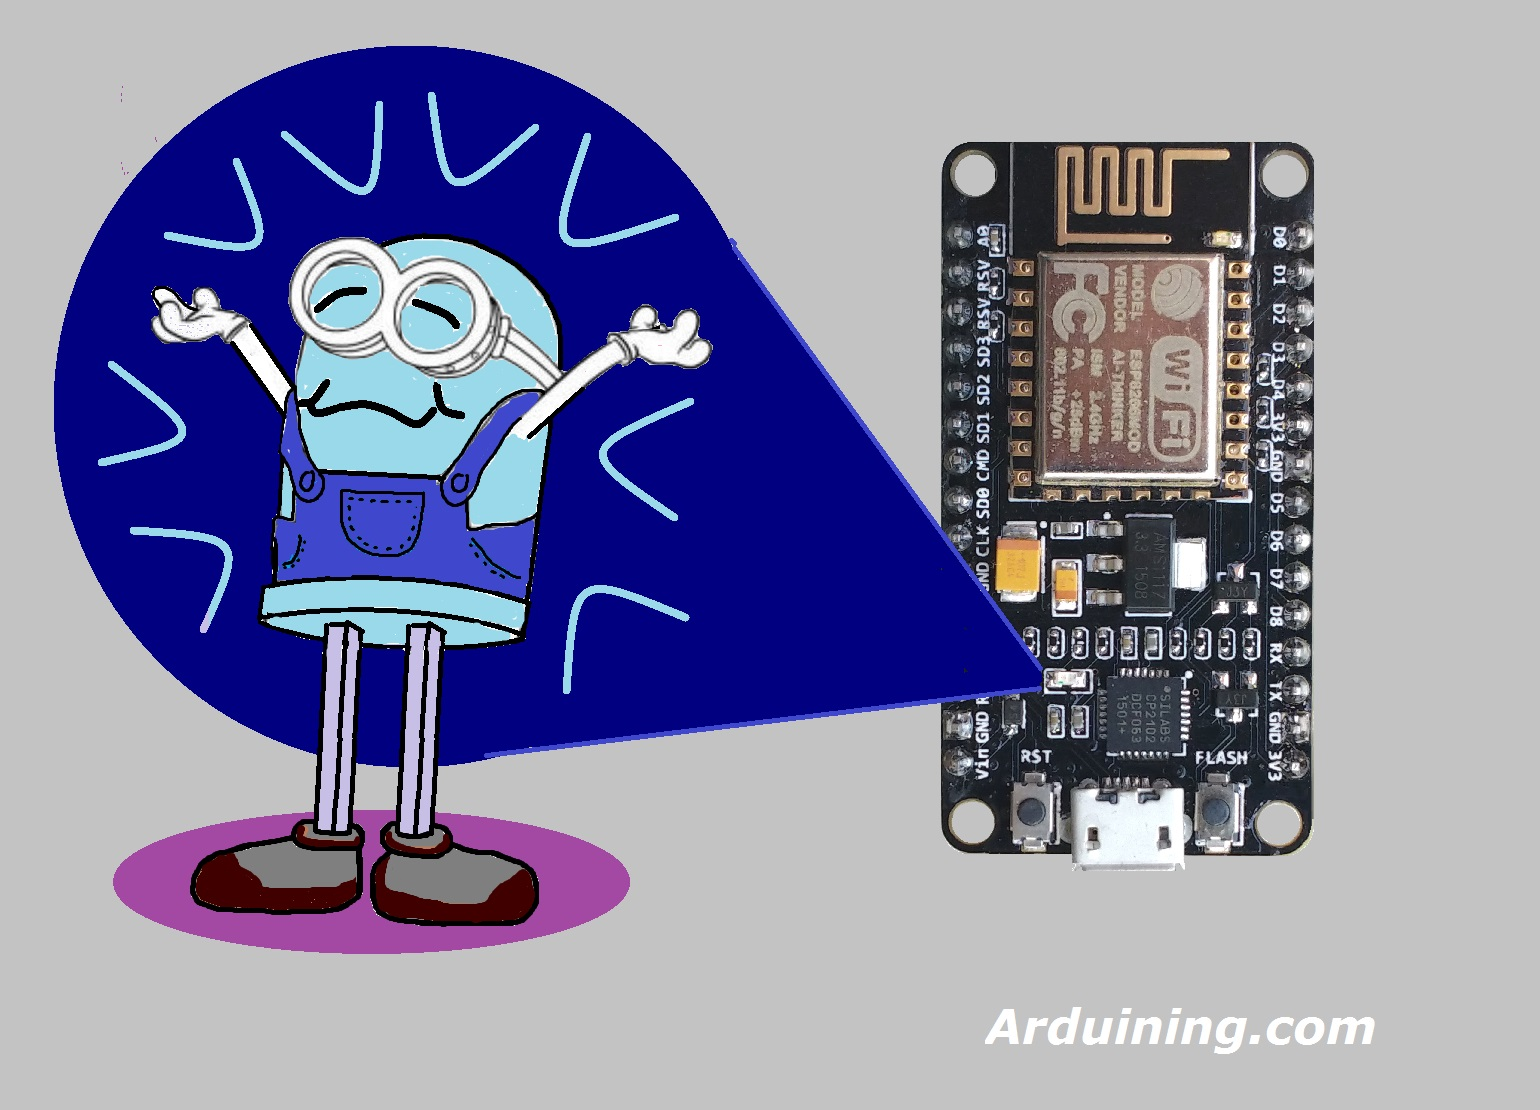 Nodemcu Breathing Led With Arduino Ide Arduining Diagram Wiring Esp8266